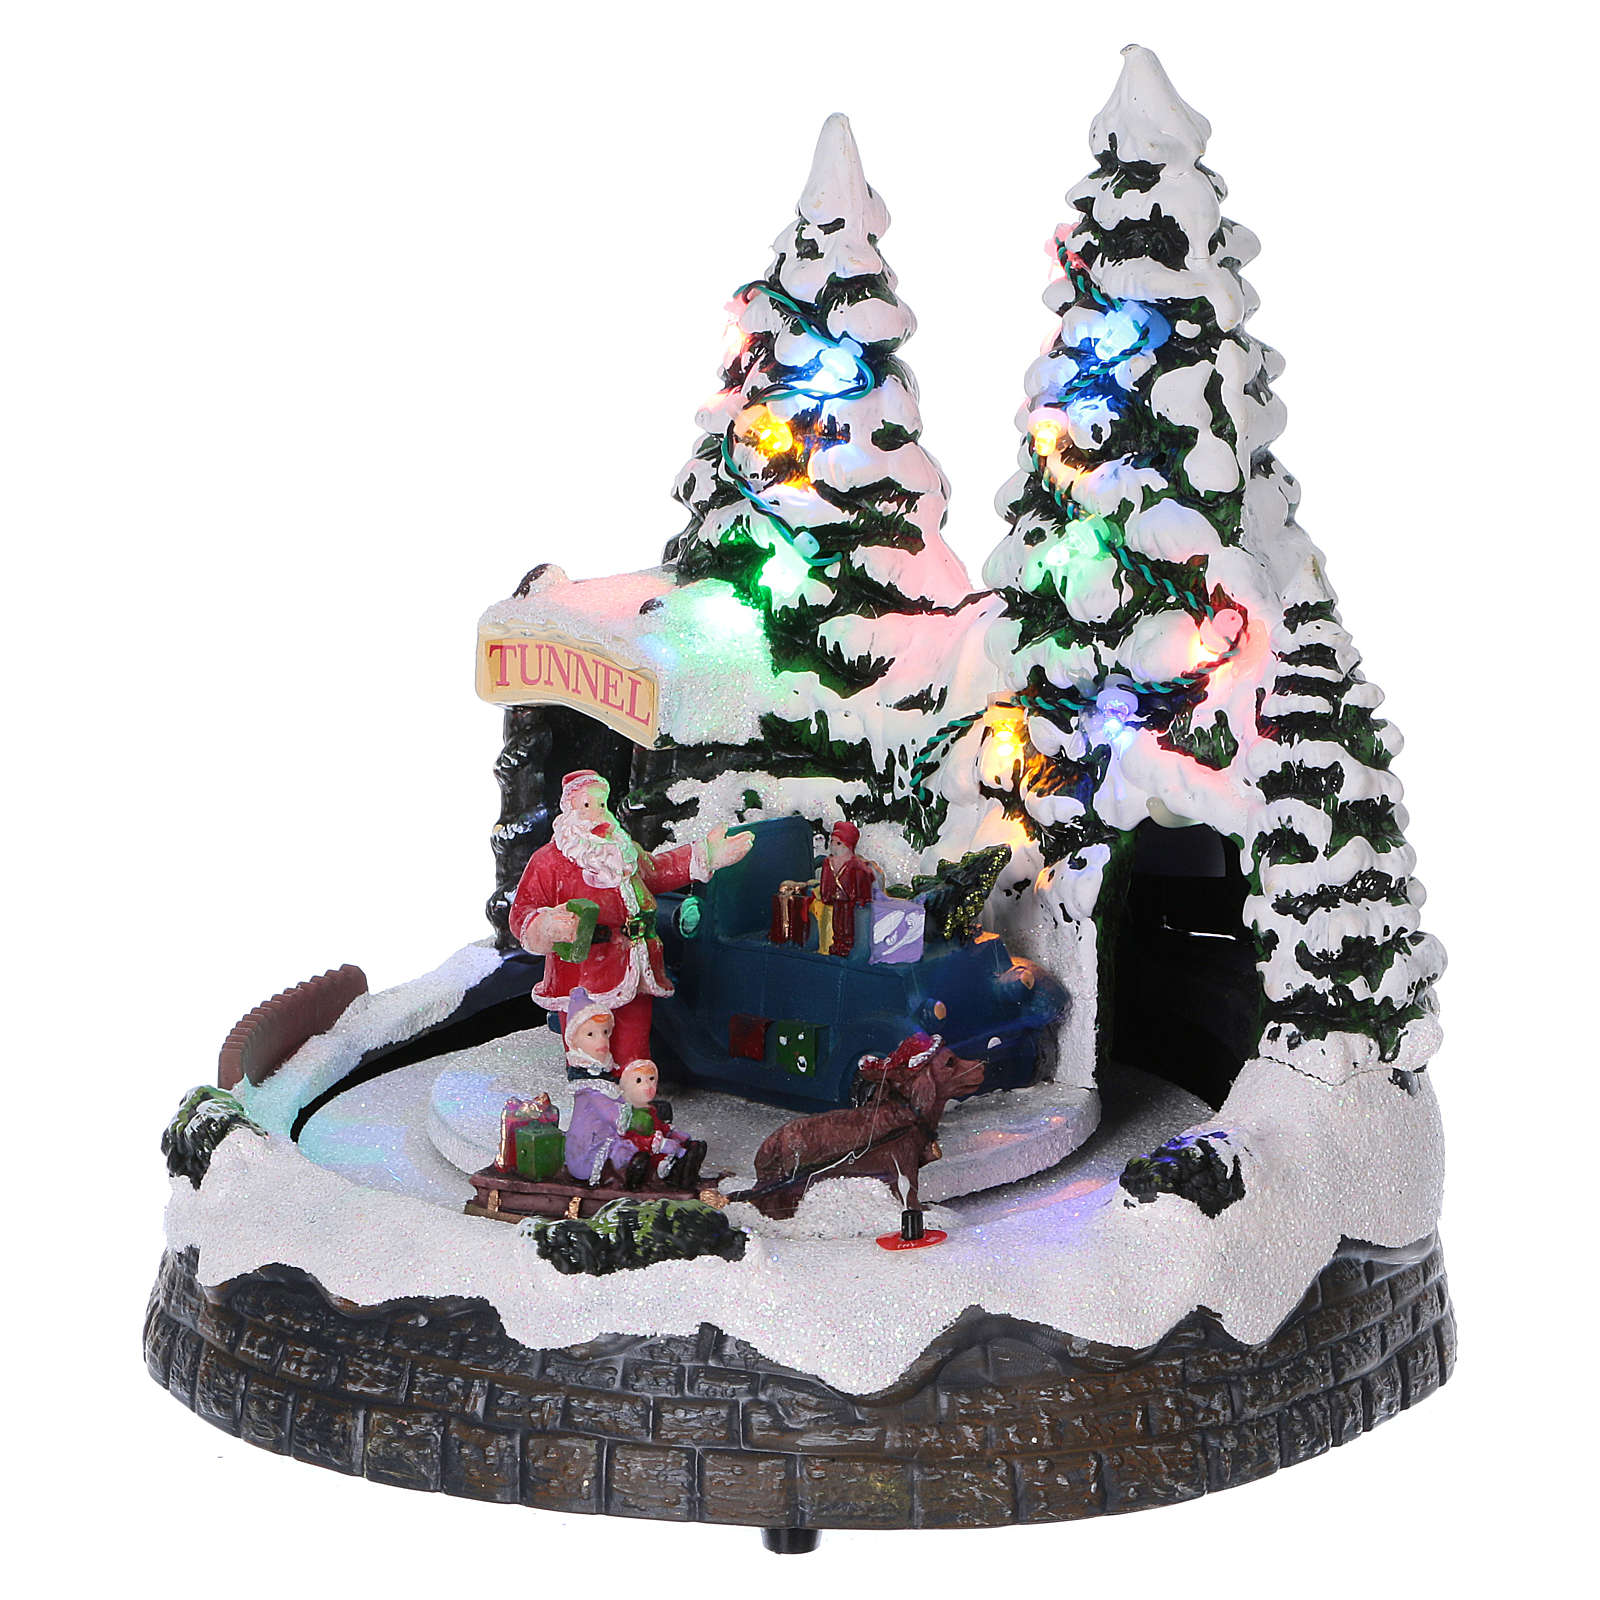 Christmas village scene moving sleigh, tunnel and Santa Claus 20x20x18 cm 3